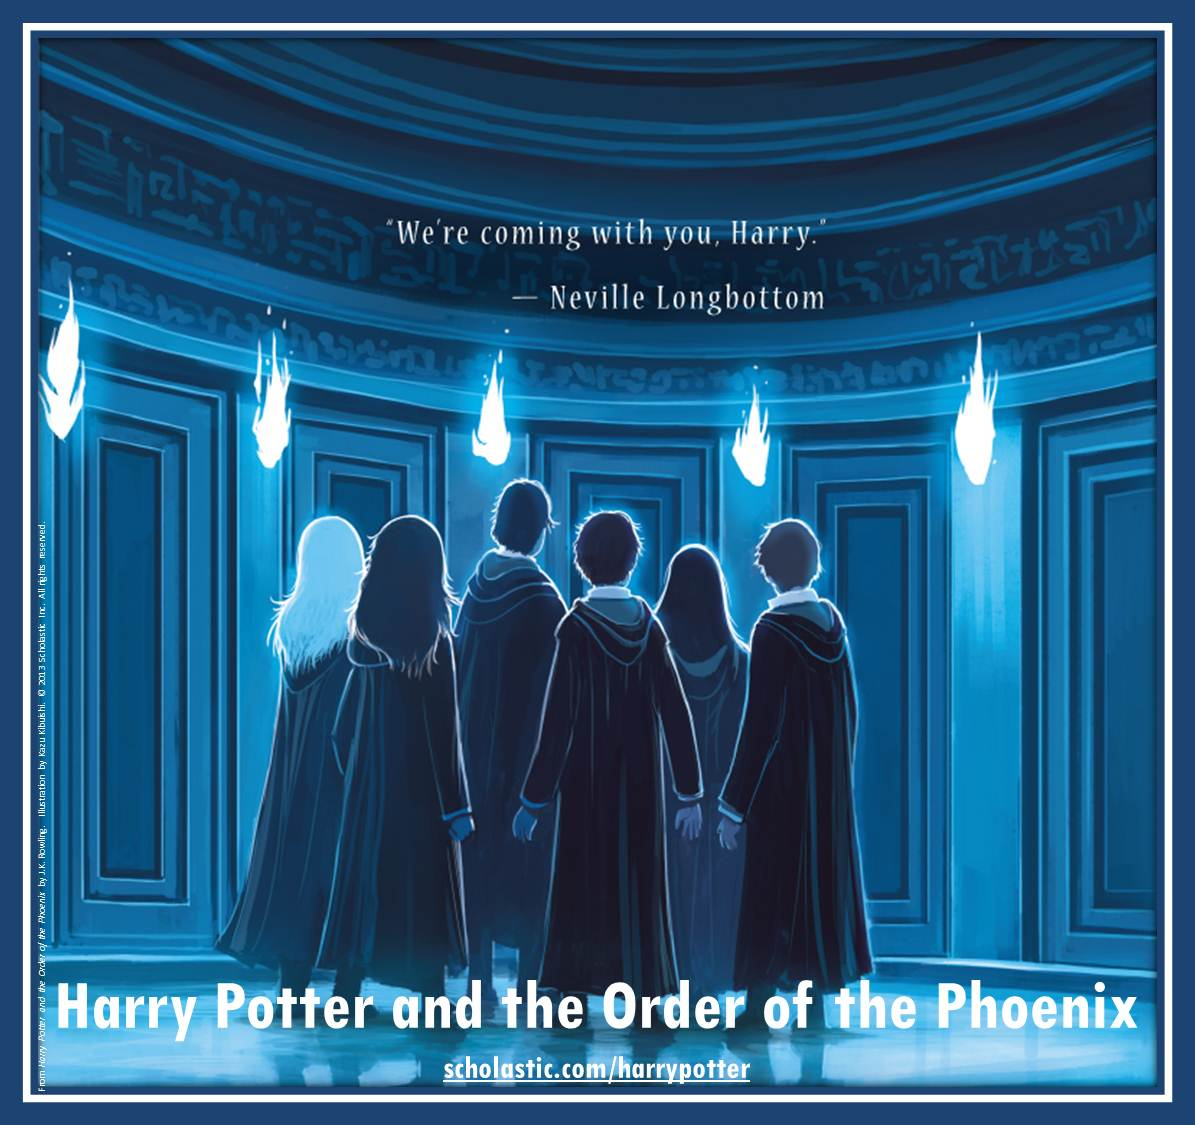 Harry Potter and the Order of the Phoenix back cover by Kazu Kibuishi